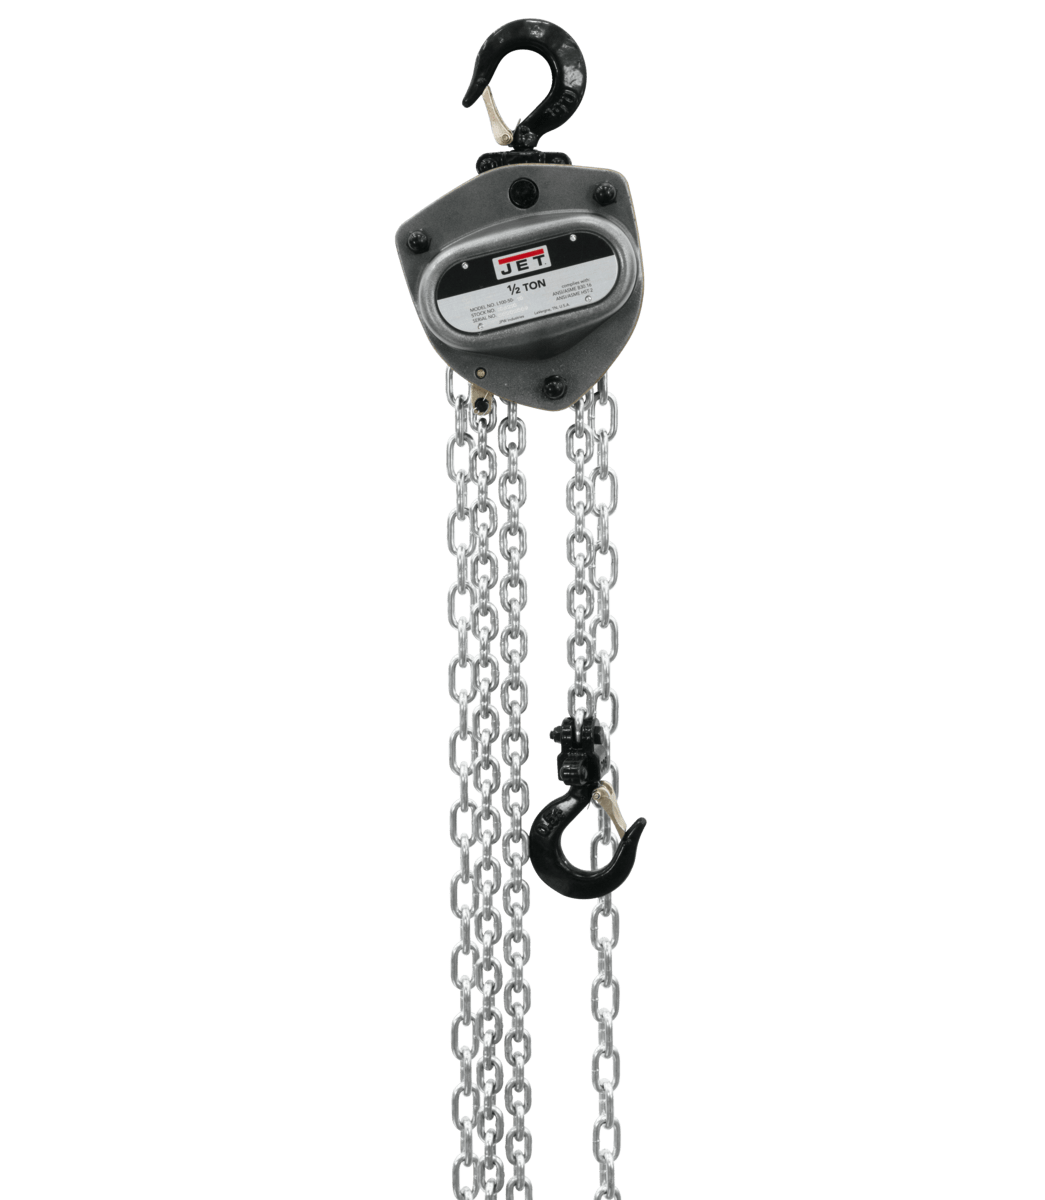 L100-50WO-10 1/2T HOIST WITH OVERLOAD PROTECTION AND 10' LIFT